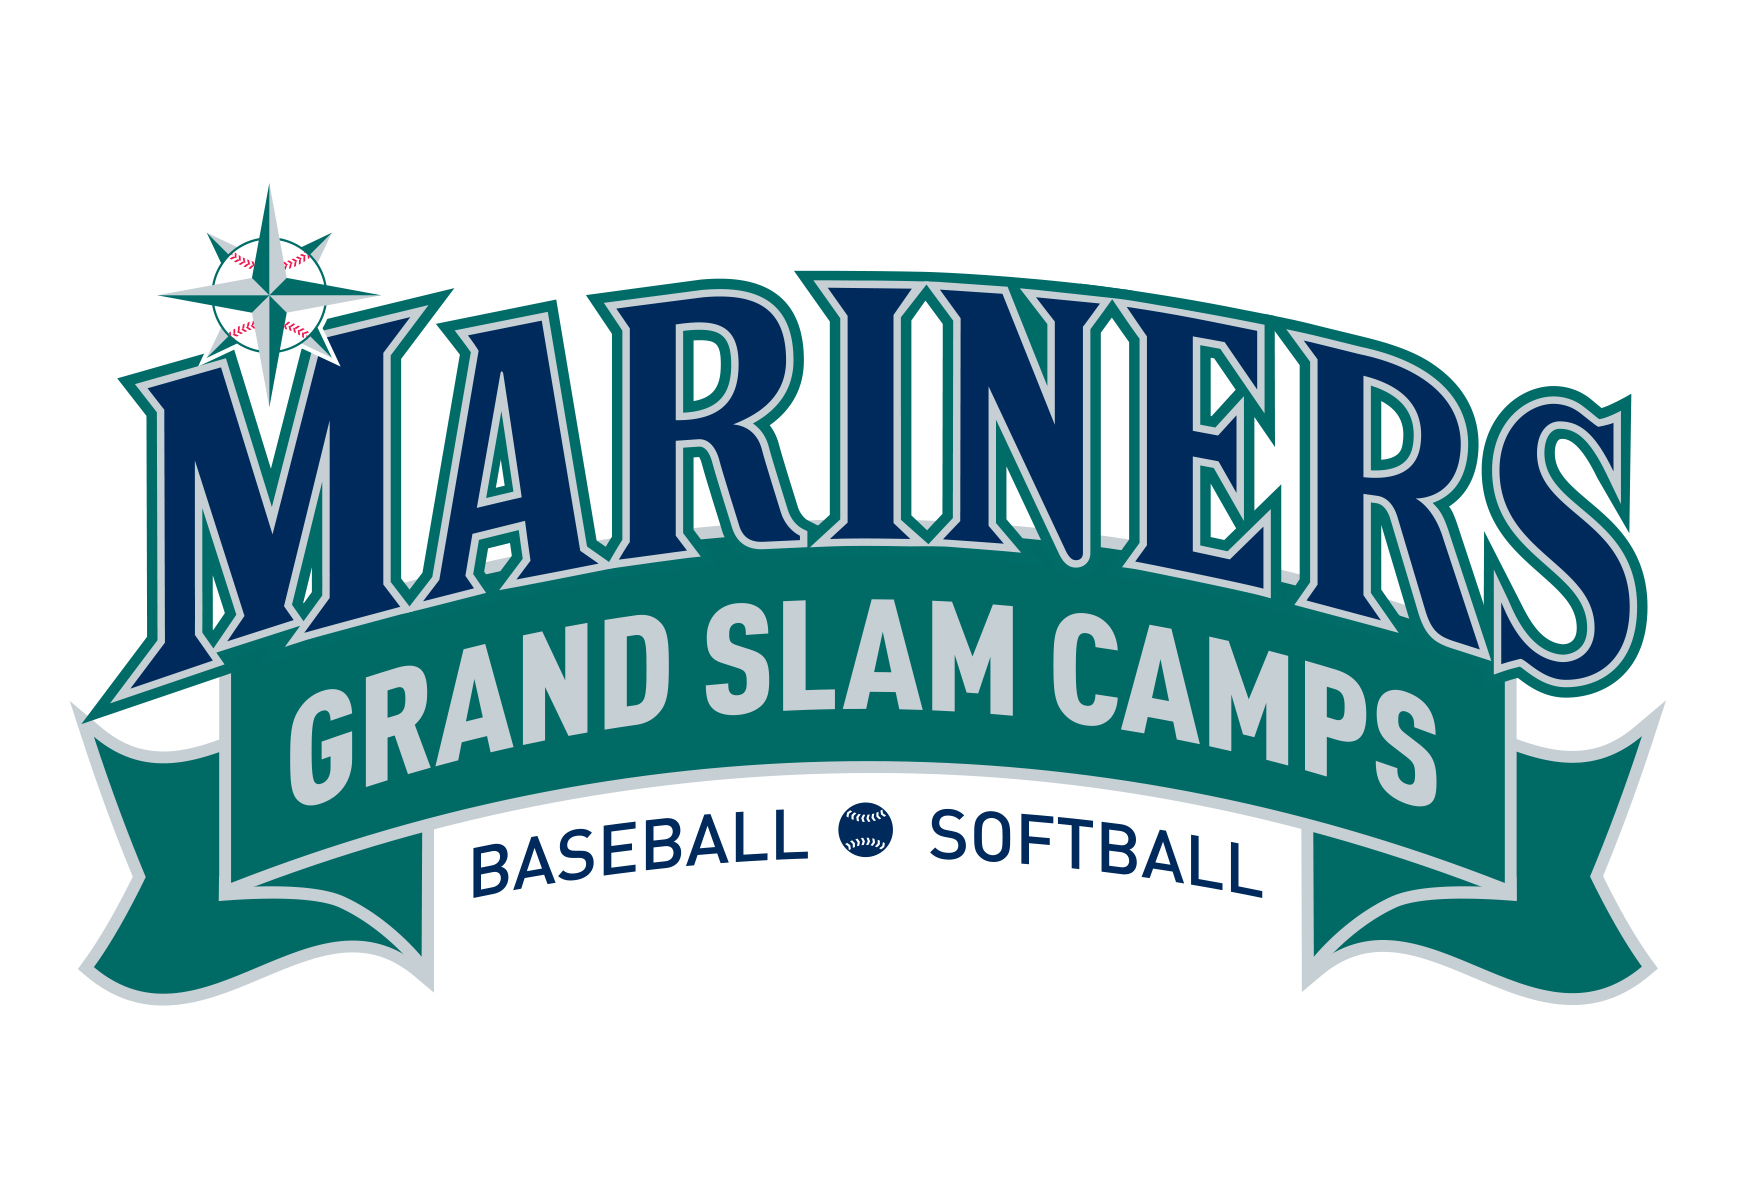 Mariners Grand Slam Camps Logo